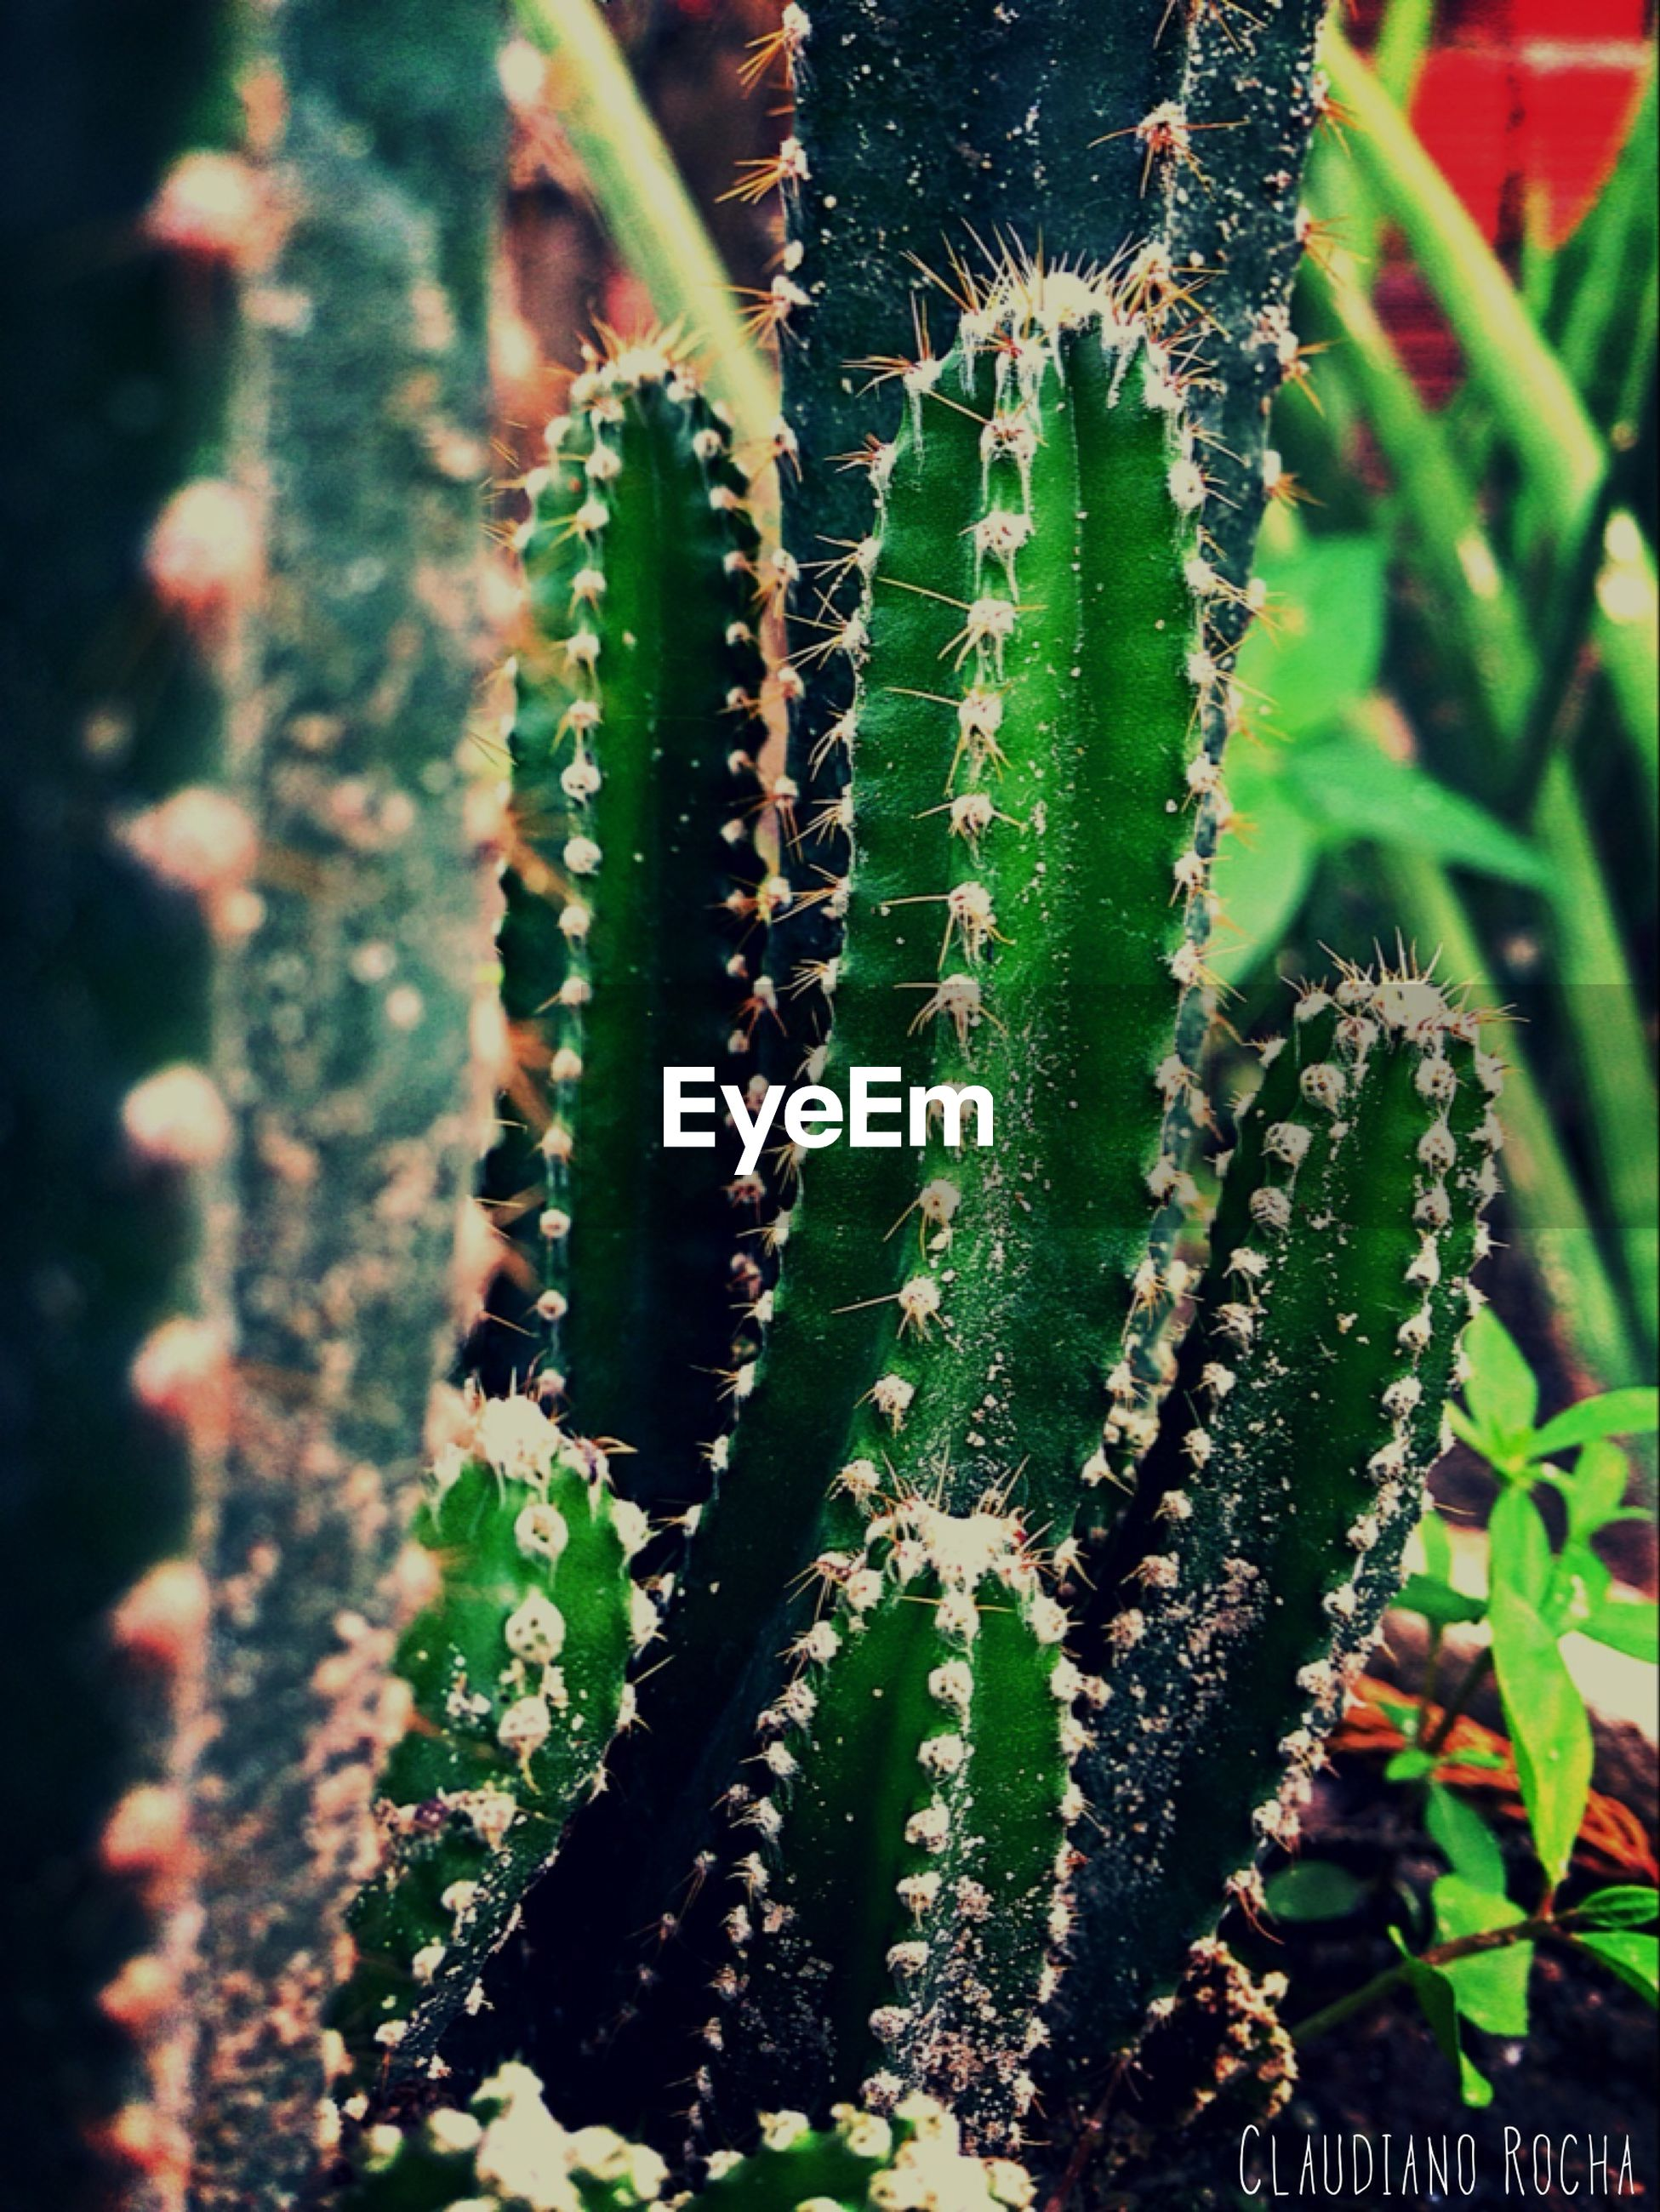 close-up, insect, animal themes, animals in the wild, focus on foreground, plant, one animal, wildlife, growth, nature, green color, spiked, thorn, beauty in nature, selective focus, outdoors, caterpillar, cactus, day, no people